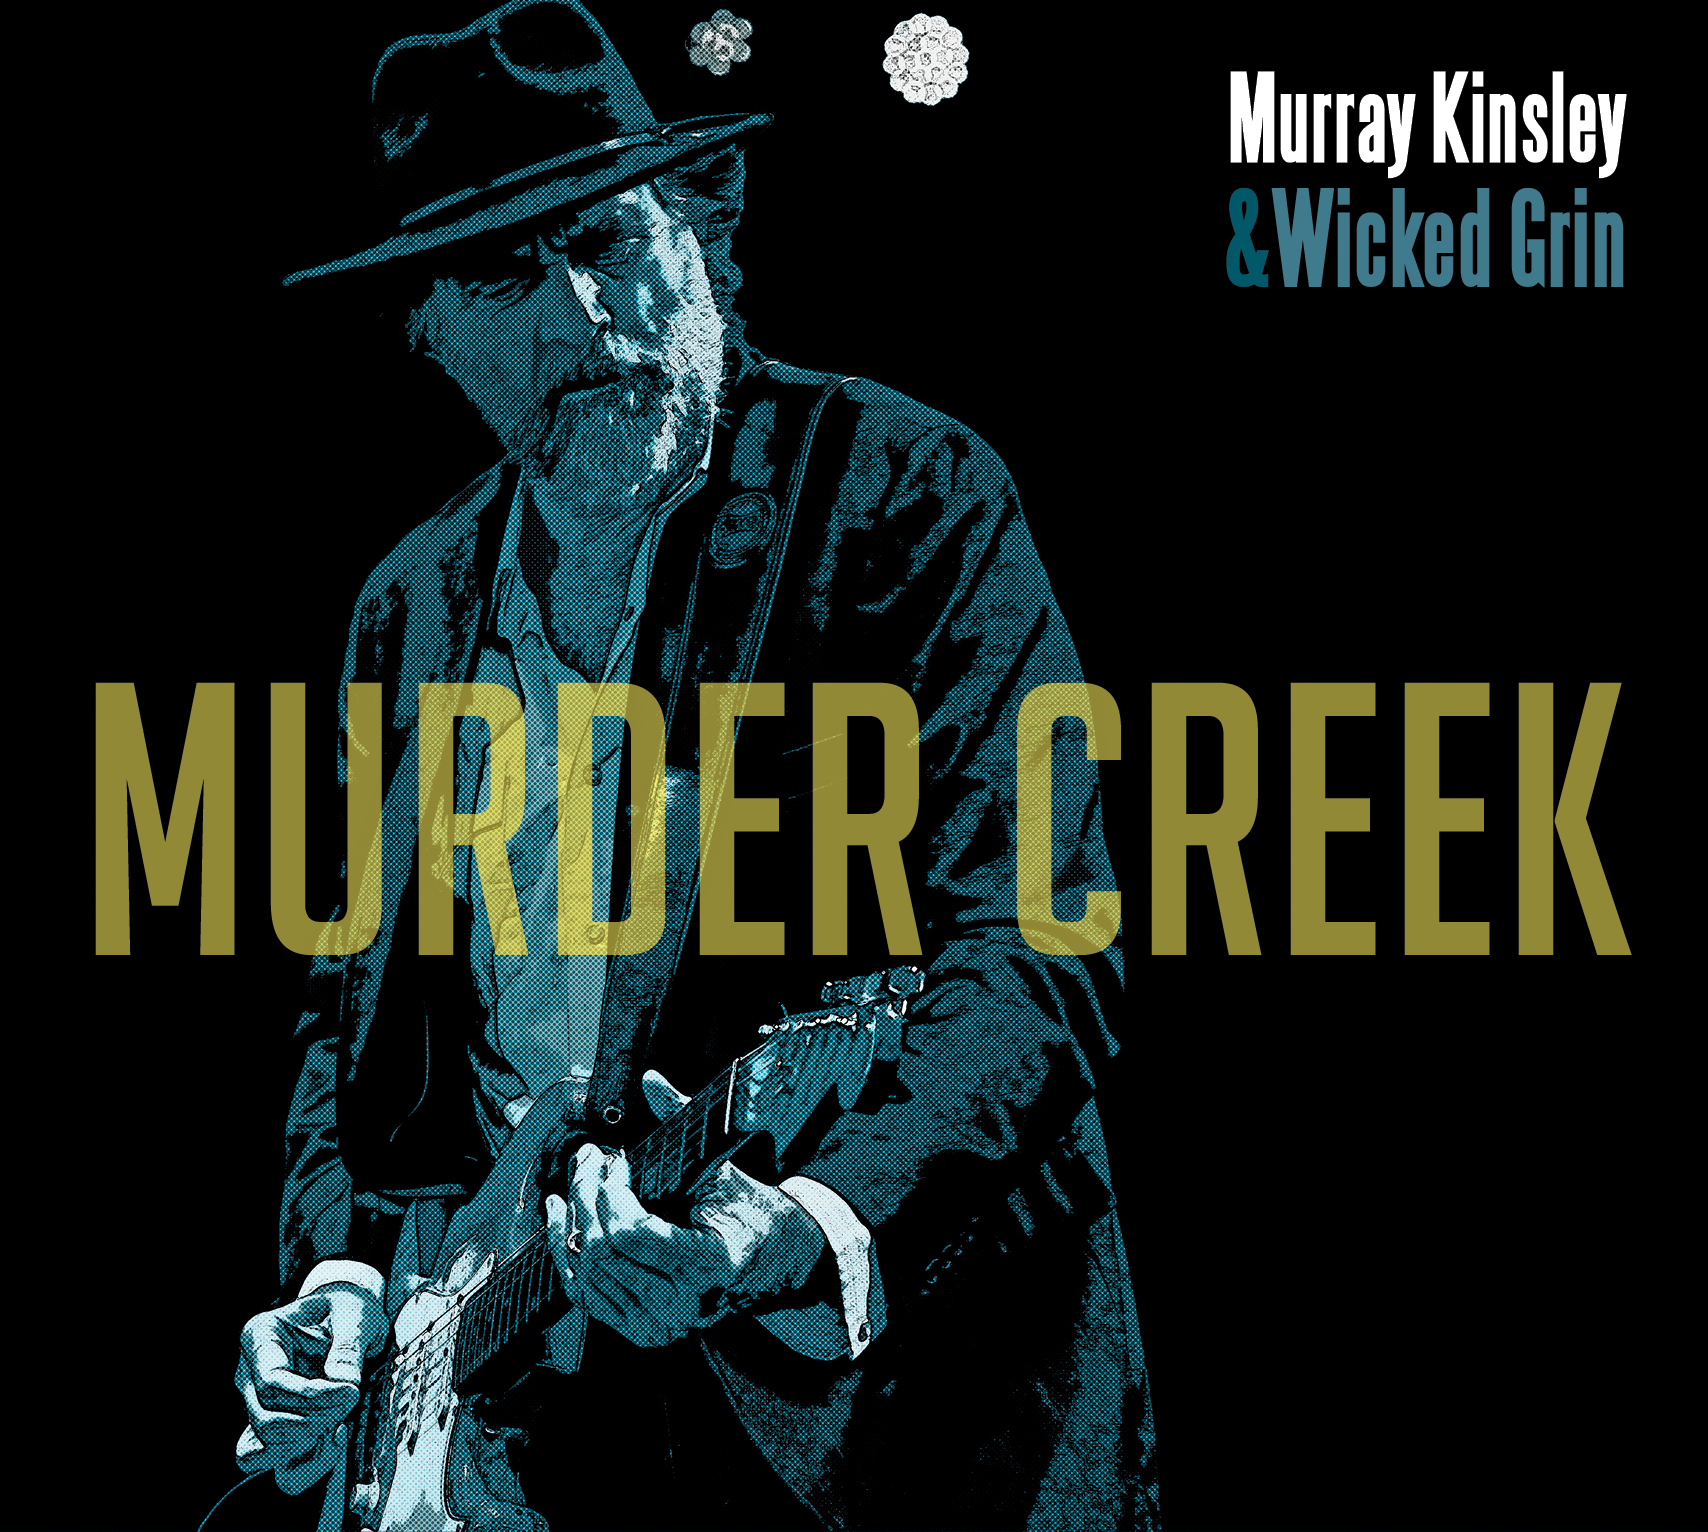 Murder Creek CD Cover - Wicked Grin